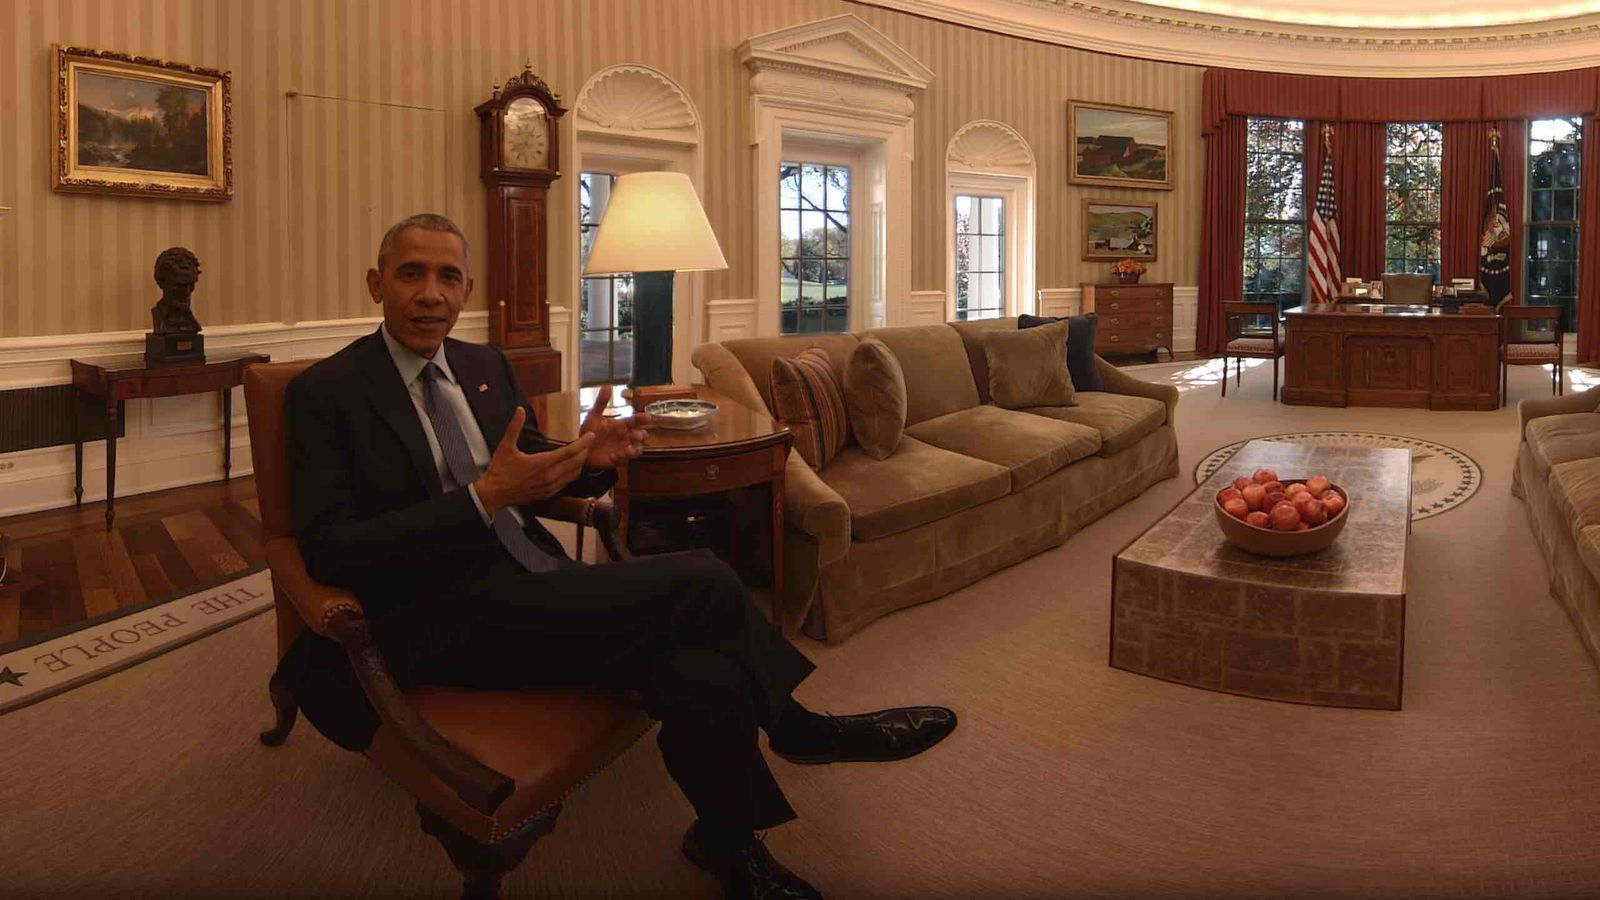 Tour Obama's White House one last time in VR